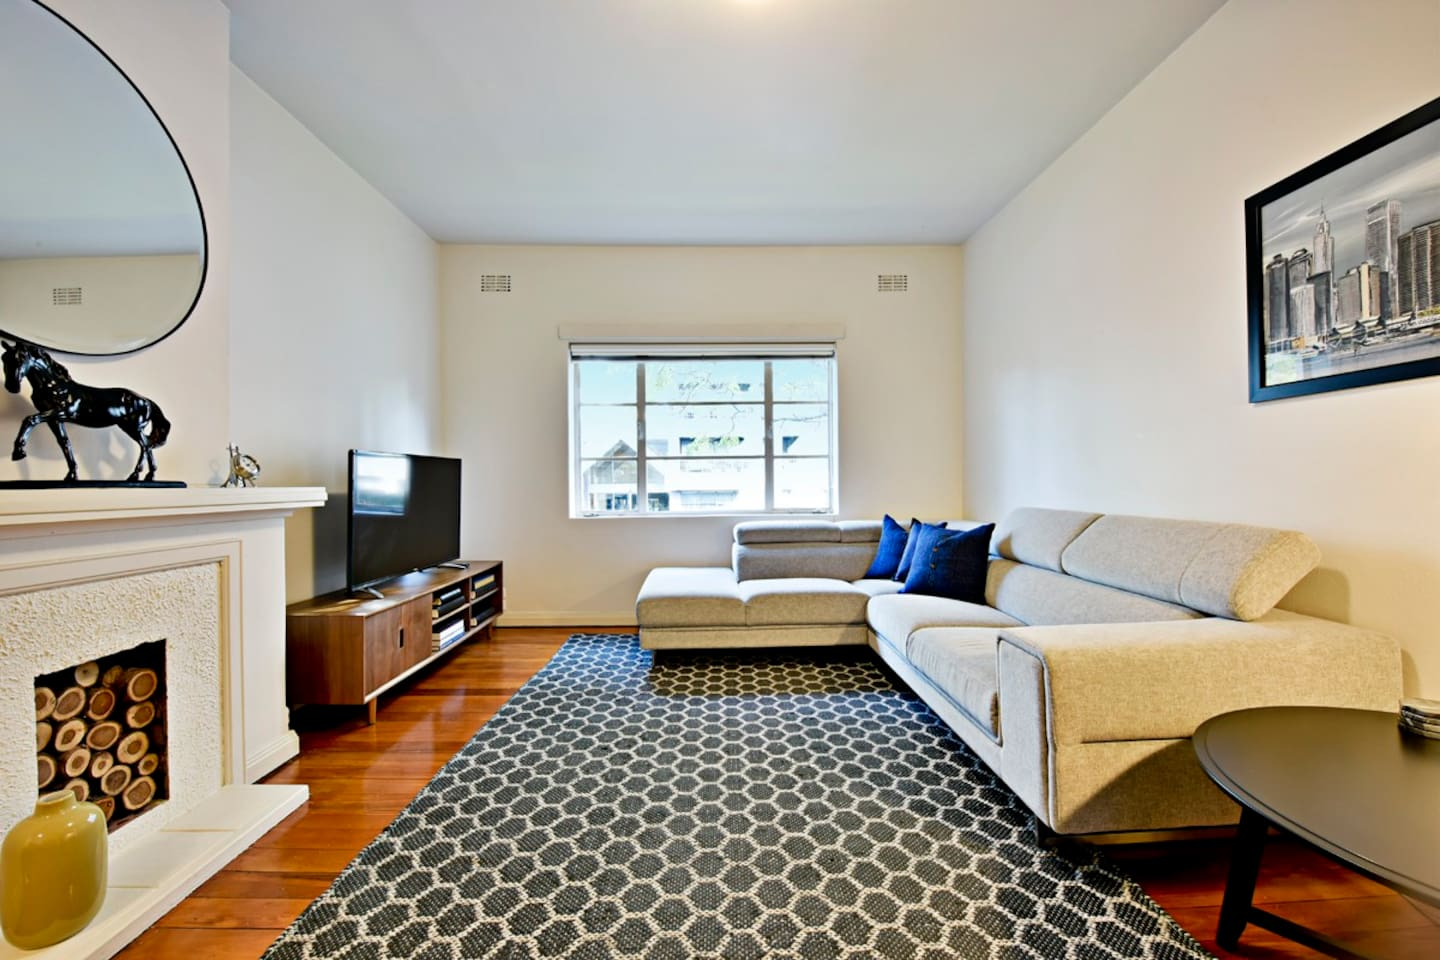 Main lounge room, with corner suite, digital TV, decorative fire place, rug, floor rug and window.